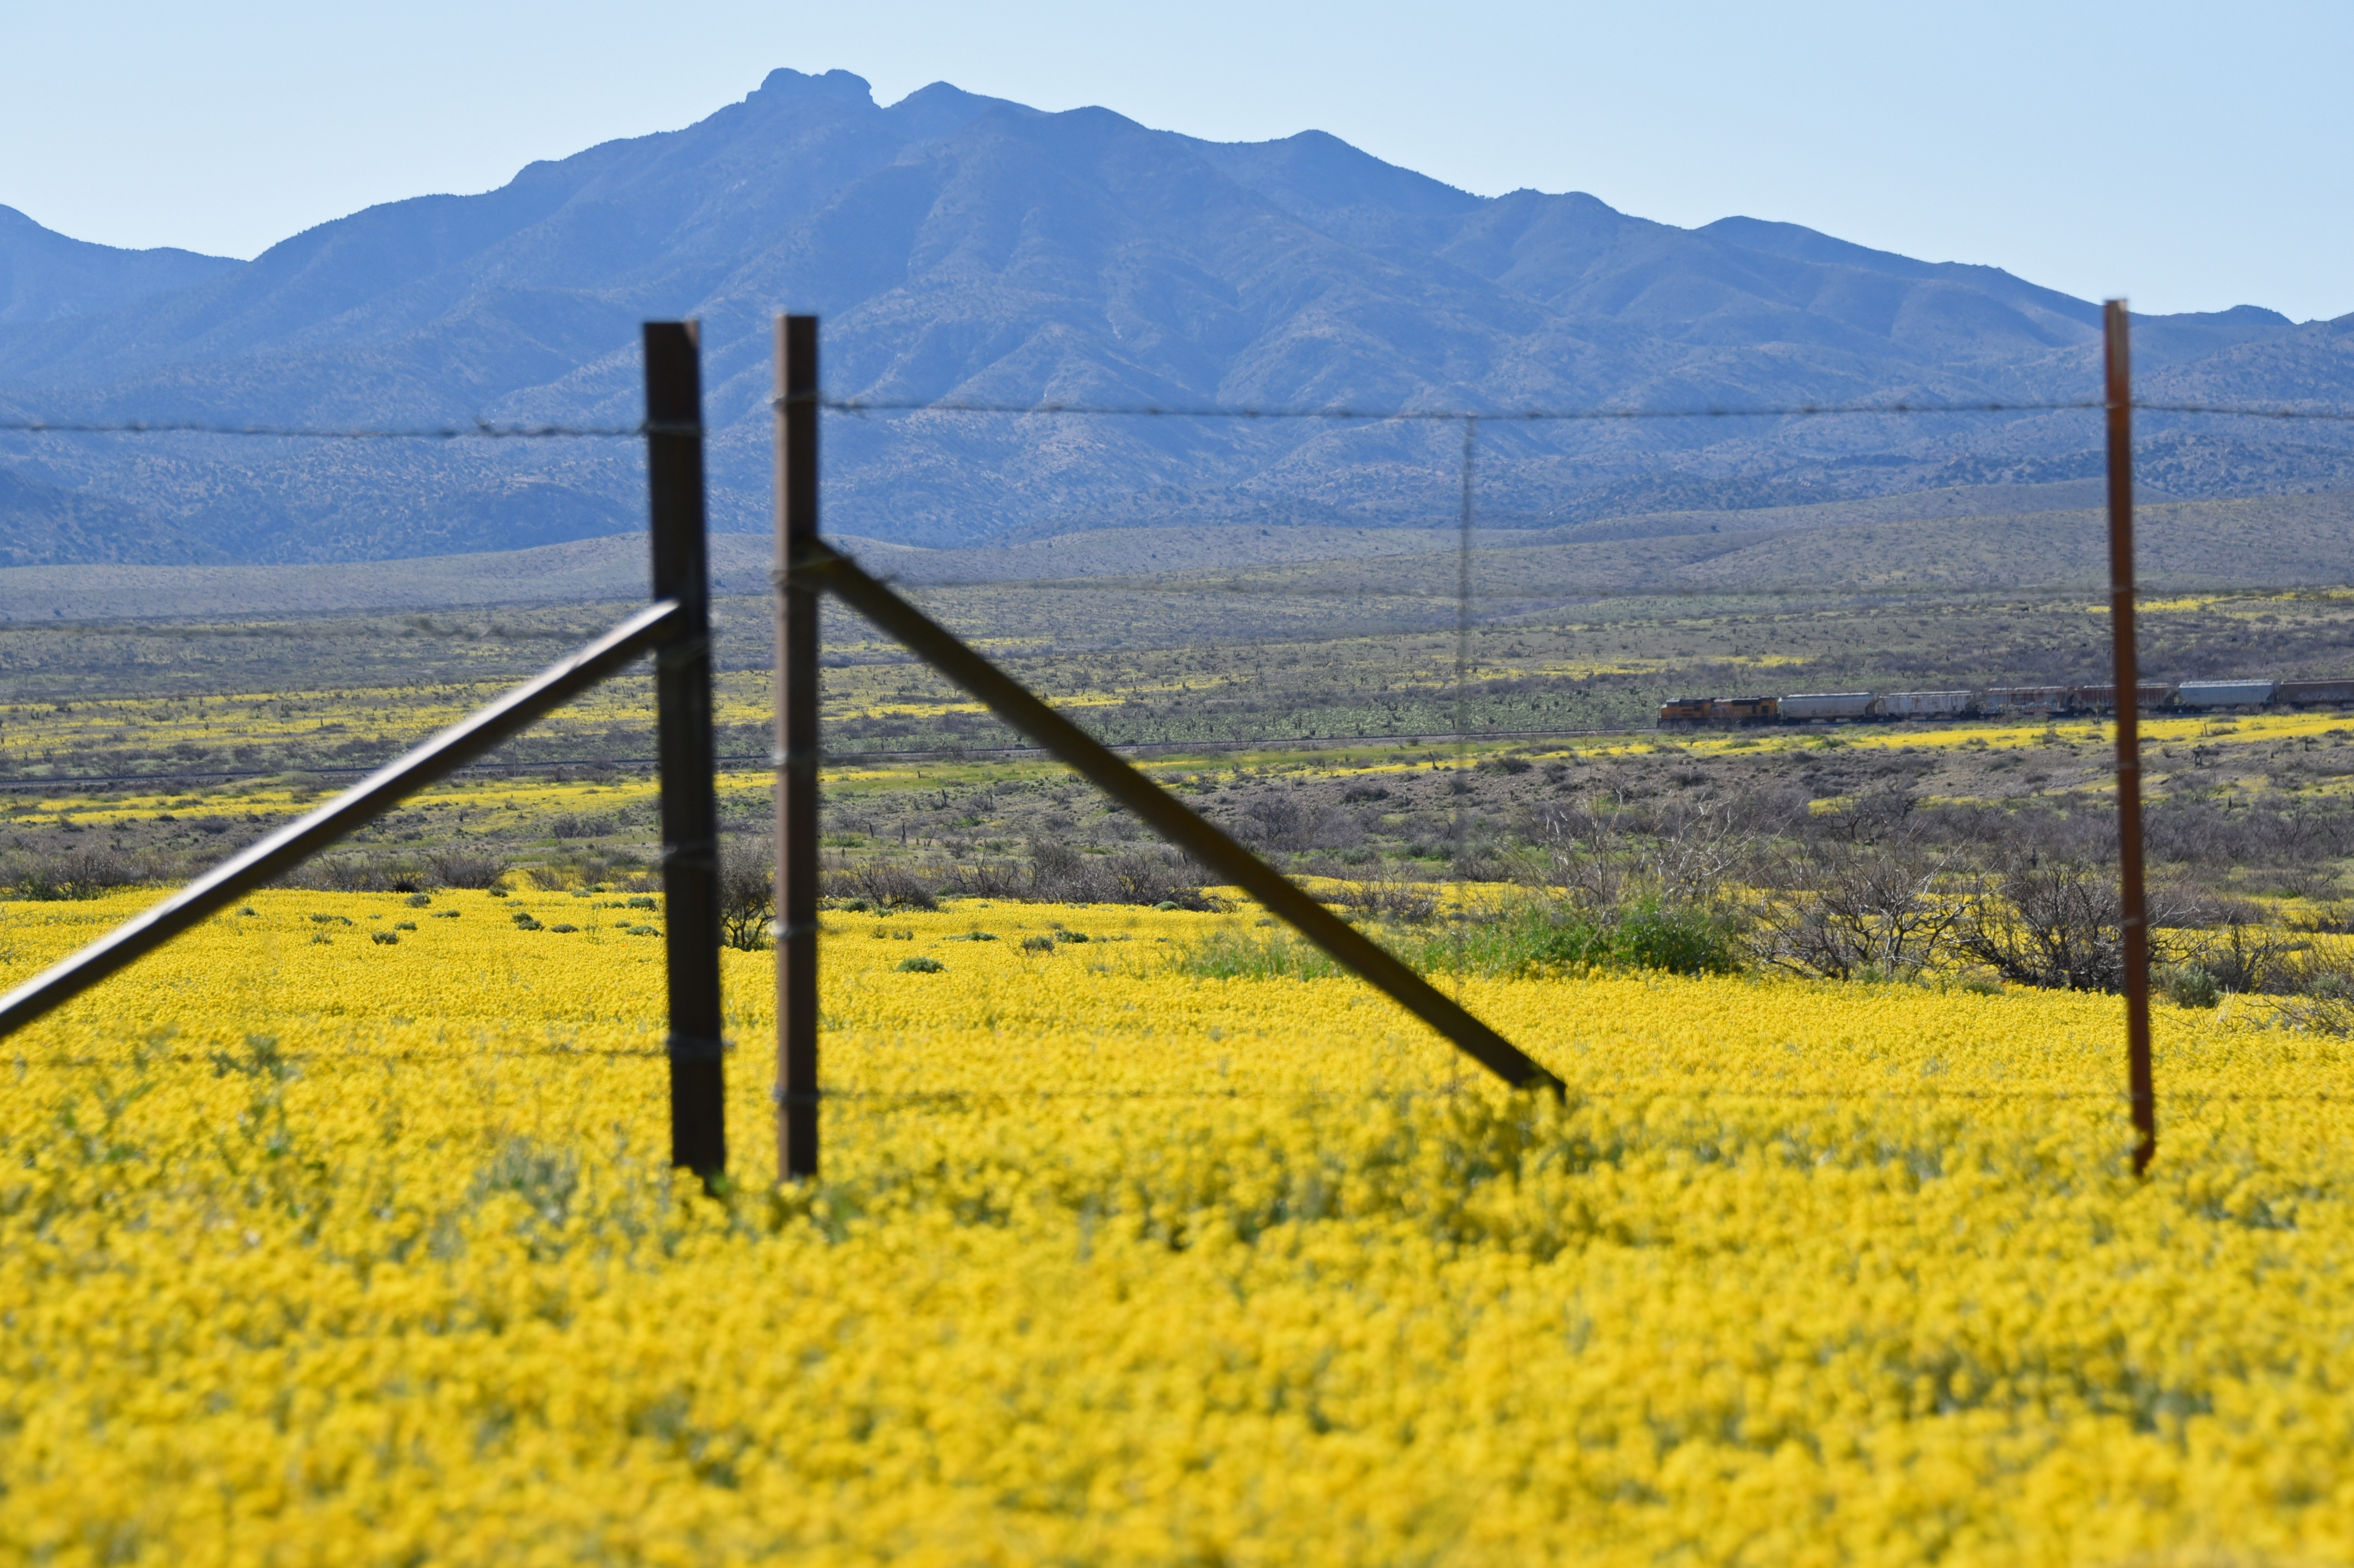 Southern Arizona desert full of yellow w